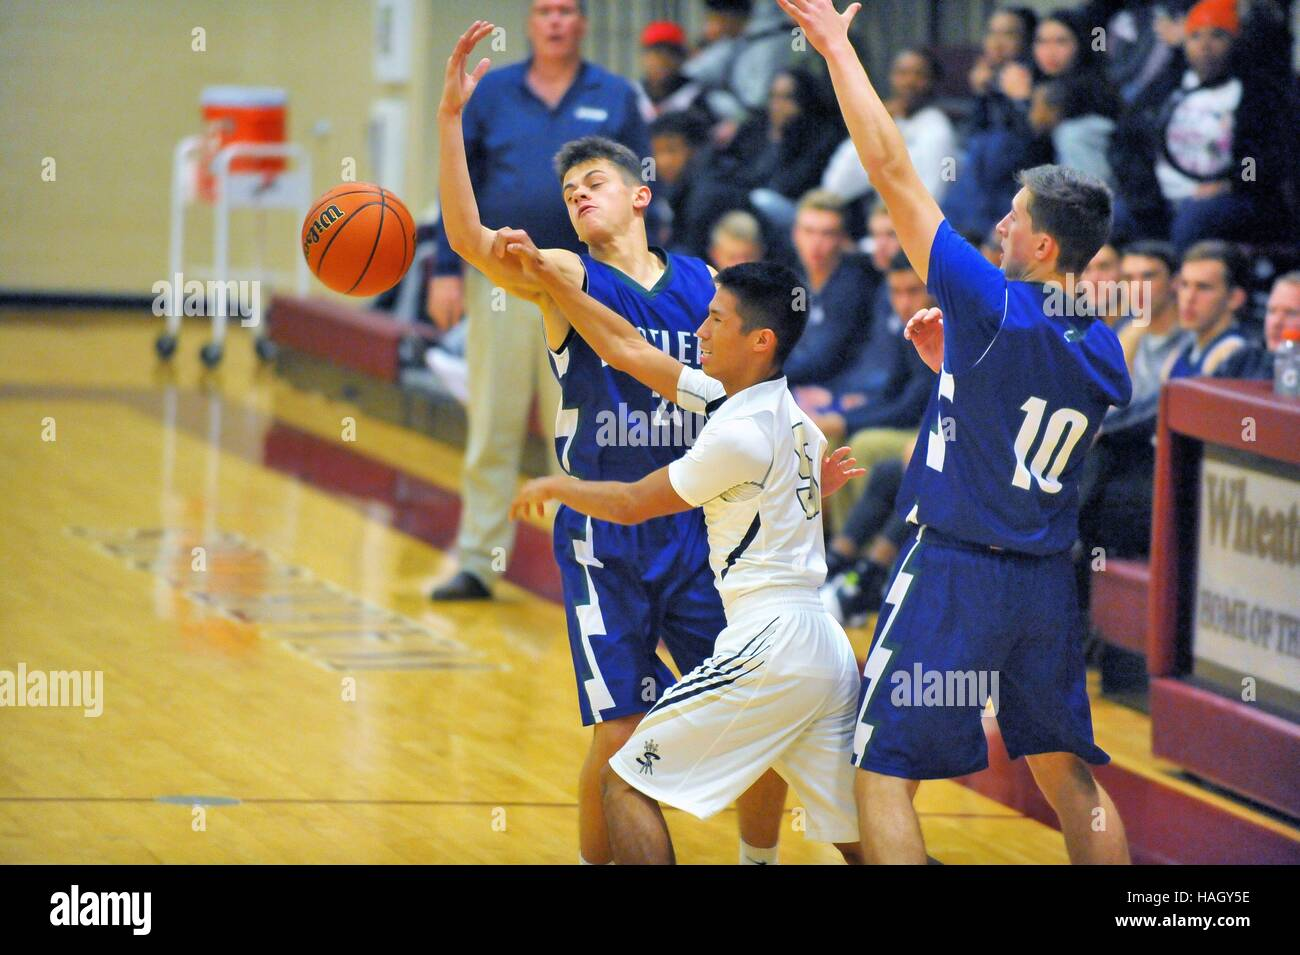 Players battle for possession of a loose ball along a sideline during a high school basketball game. USA. - Stock Image